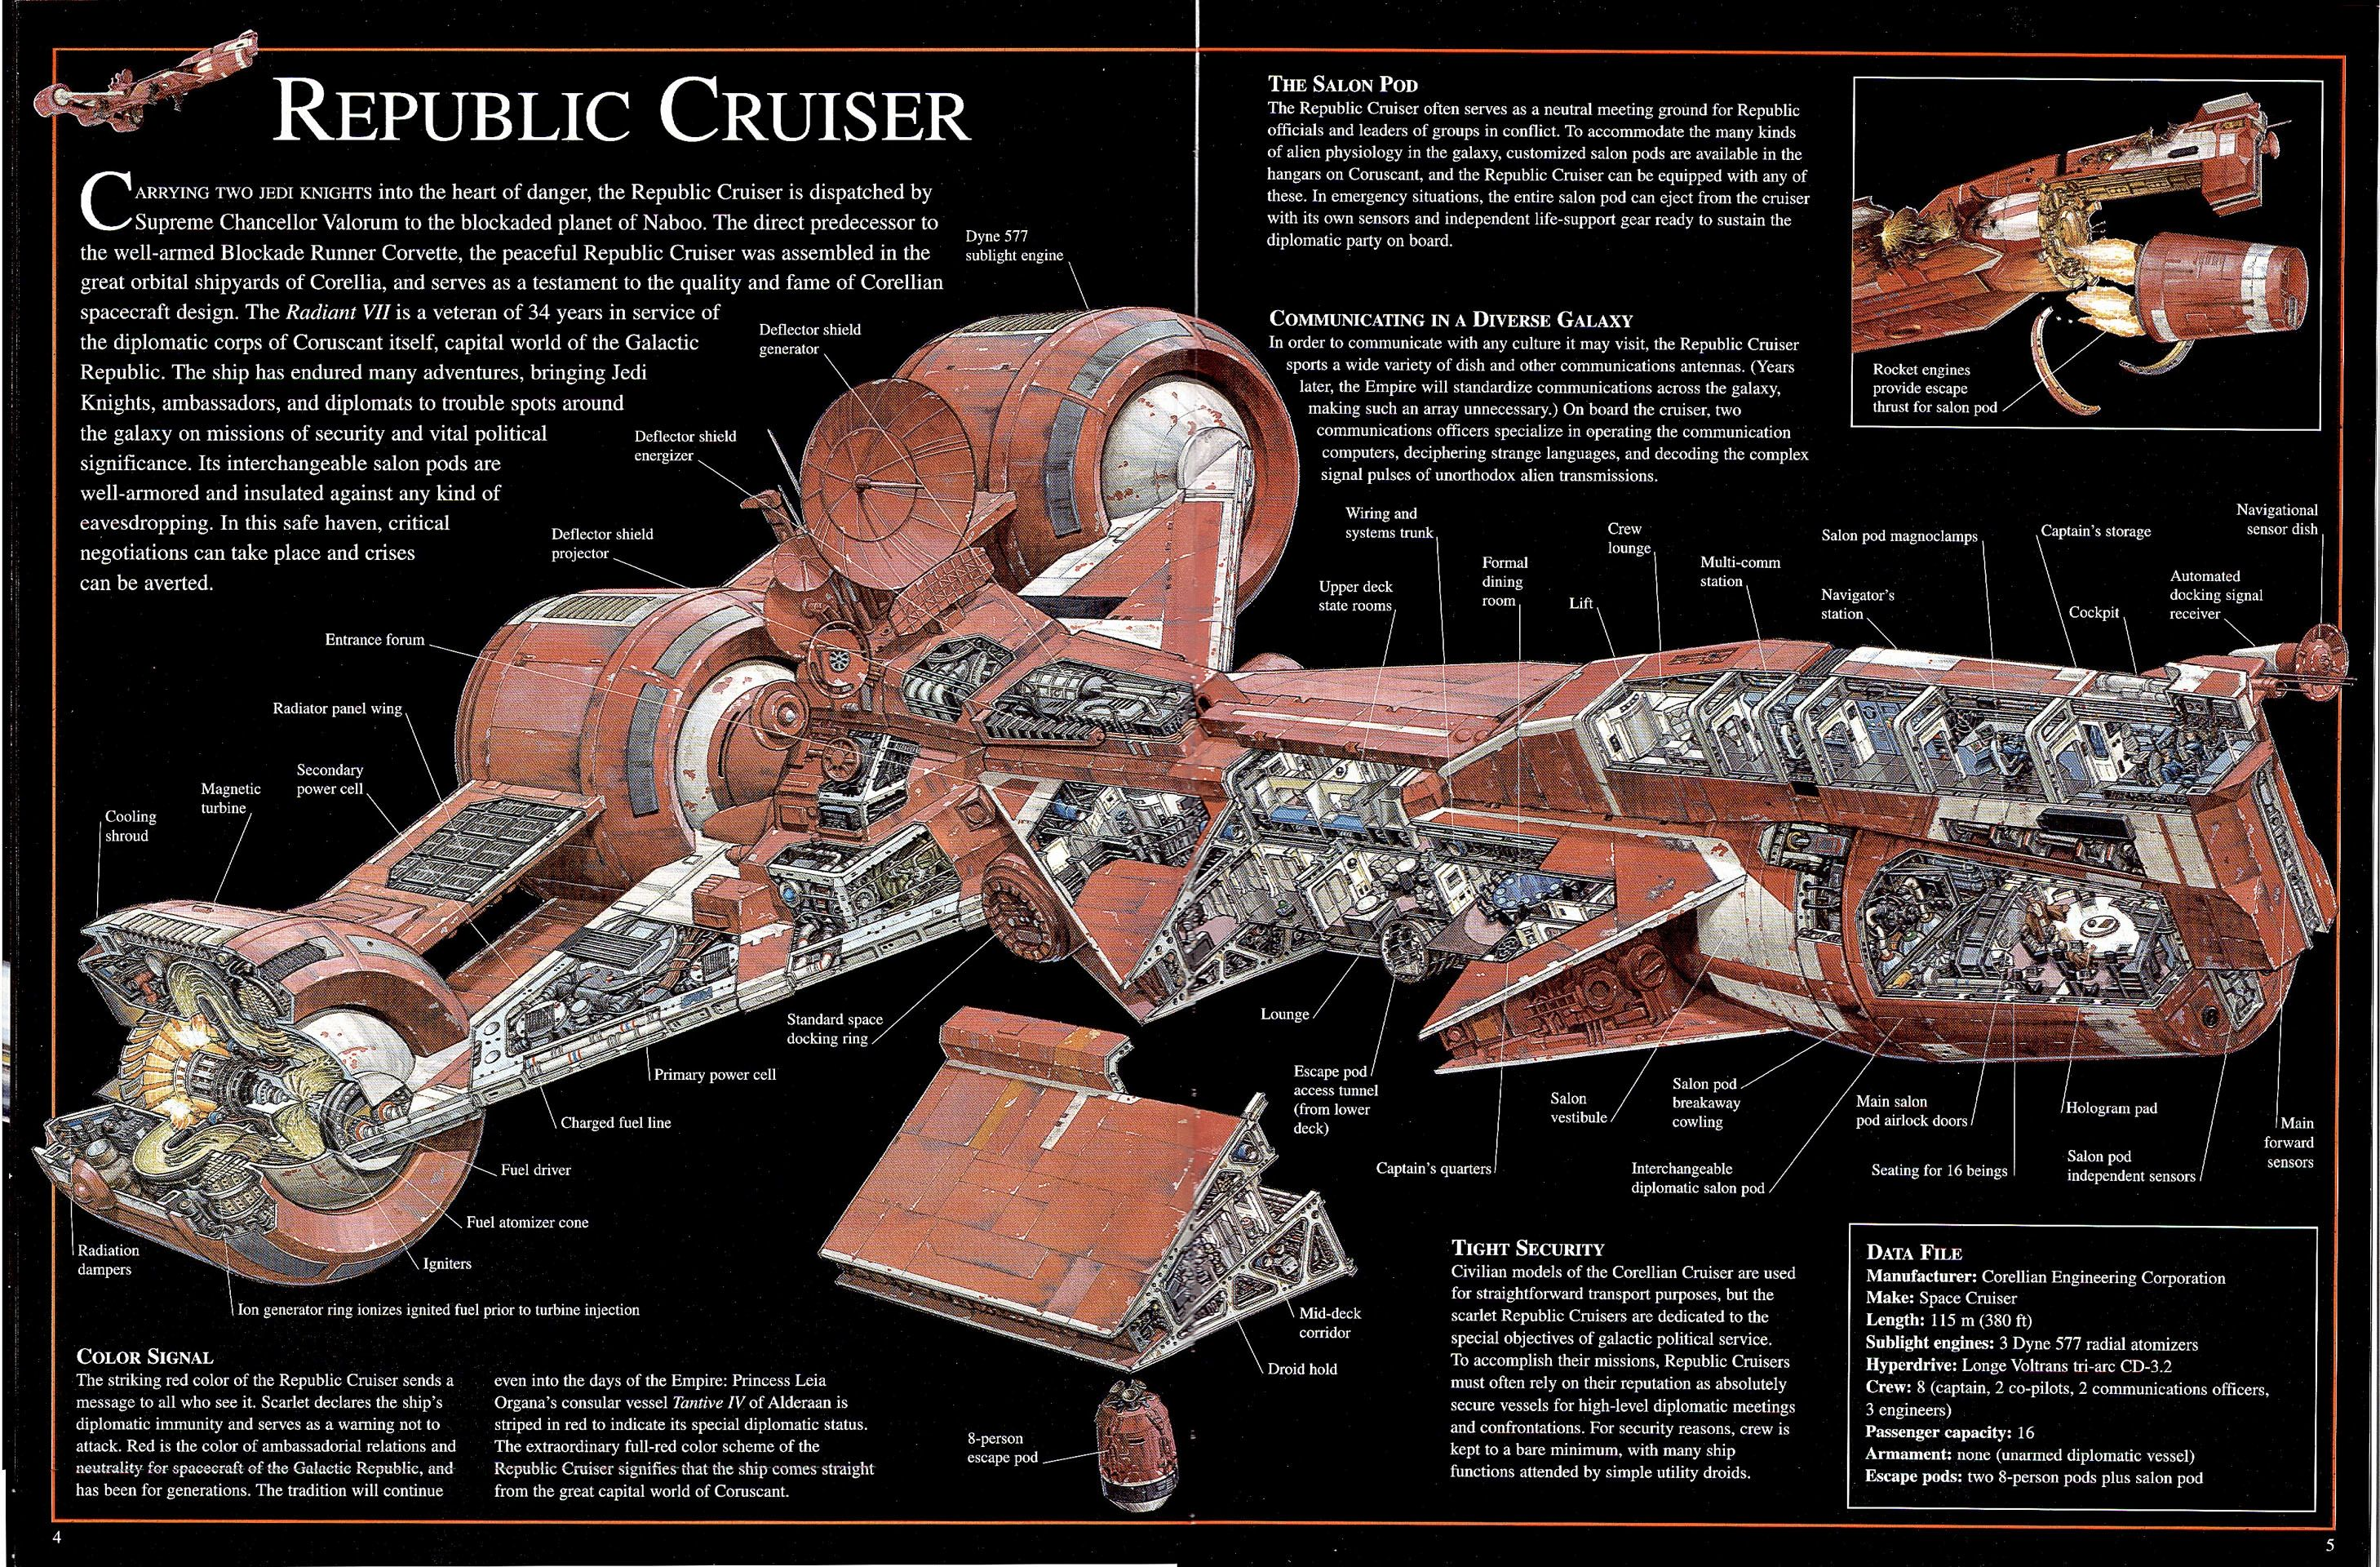 3e0d4a33fd15f4e36cf4d3645903fcd5 republic cruiser props pinterest star, starwars and sci fi